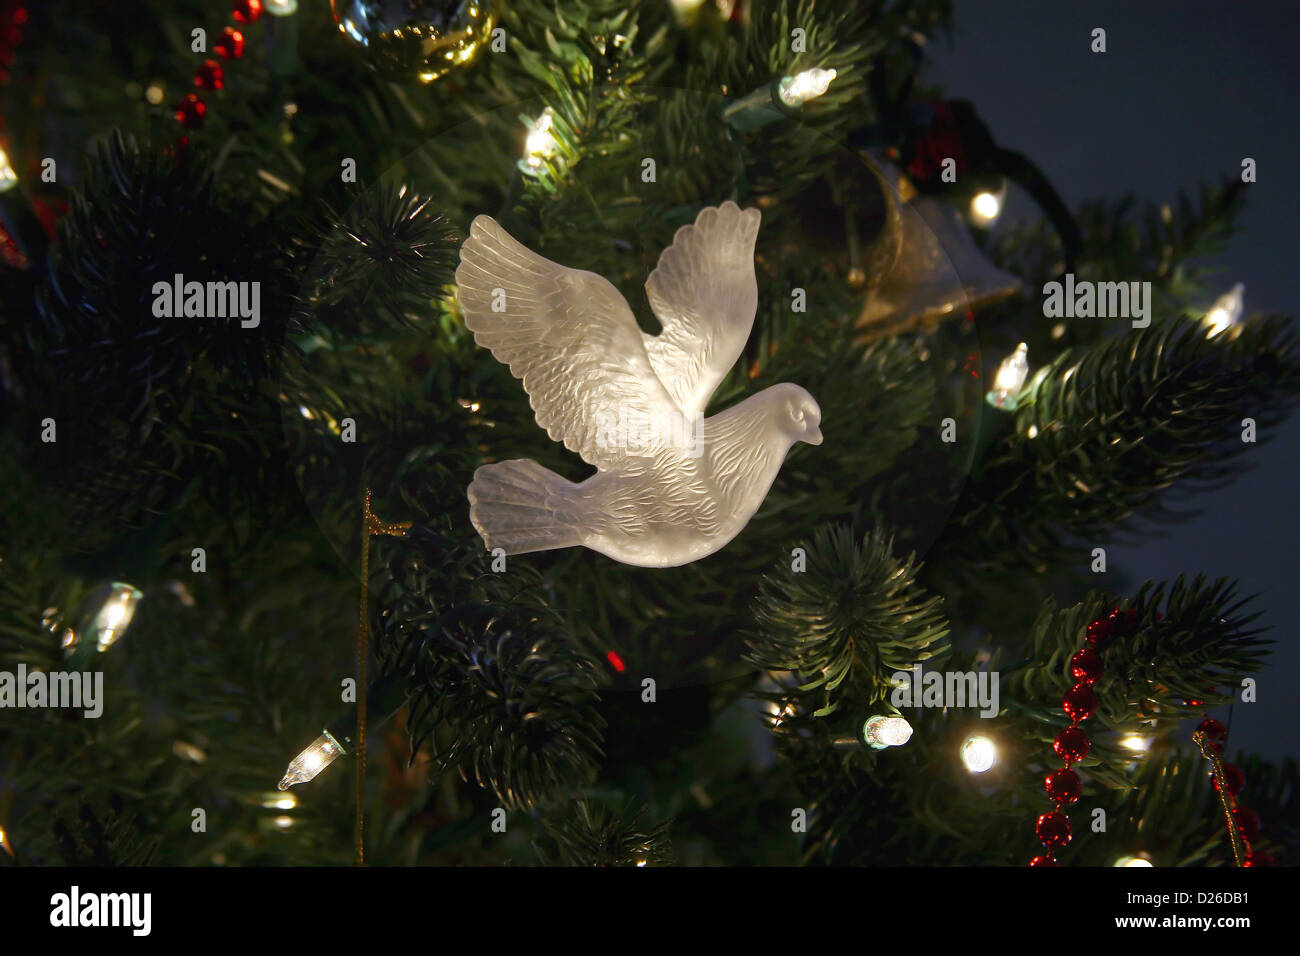 White dove ornament - Stock Photo White Dove Christmas Ornament